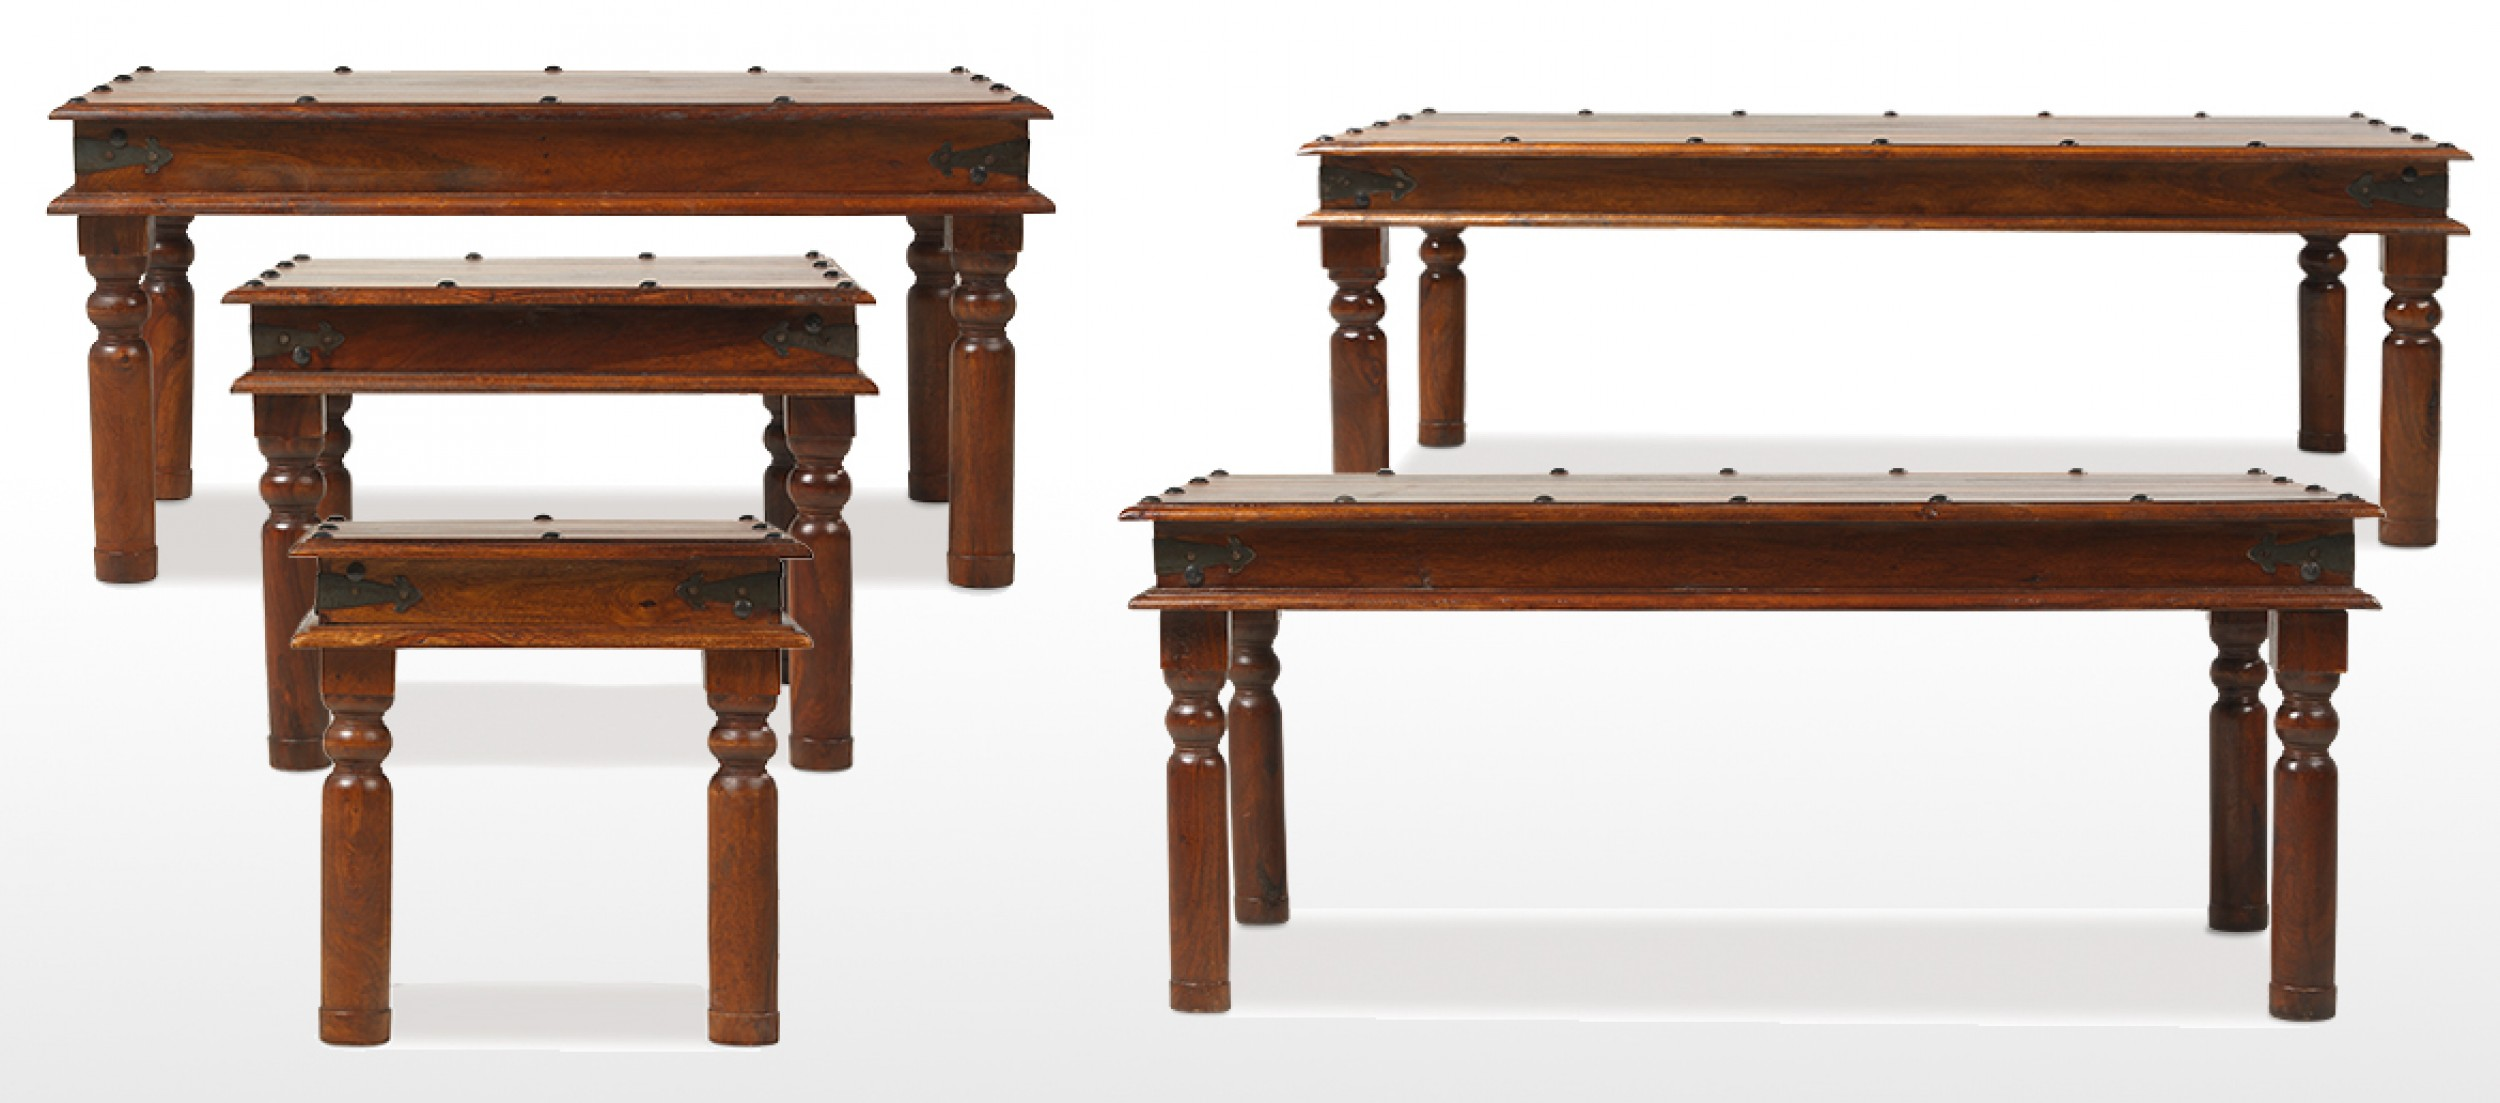 Design Remodel Nest Of Coffee Tables Australia Table Best